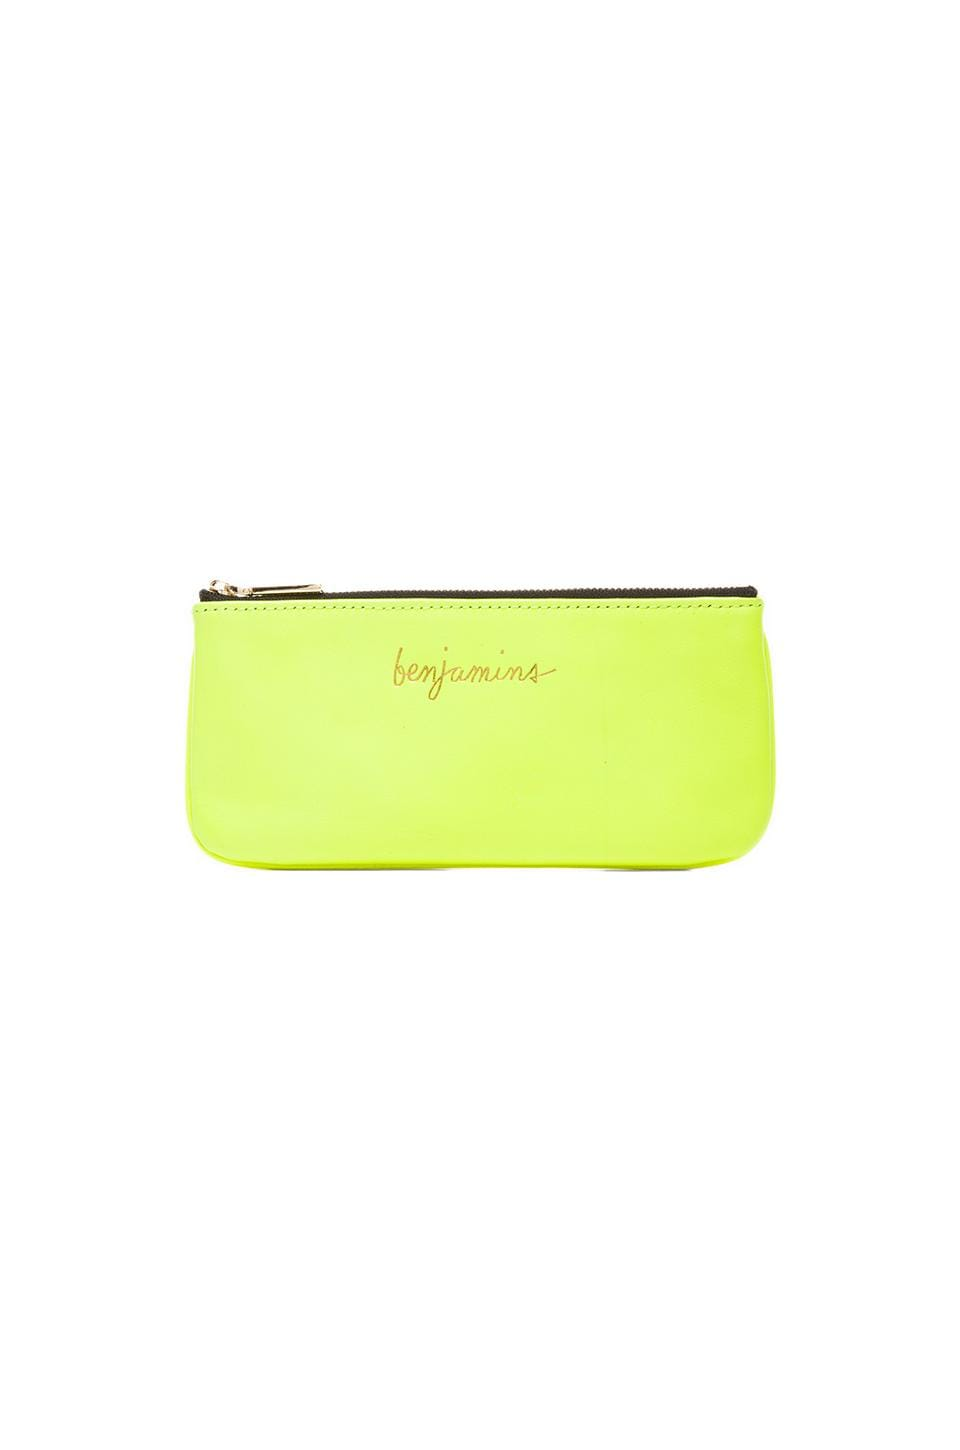 Rebecca Minkoff Benjamins Pouch in Neon Yellow